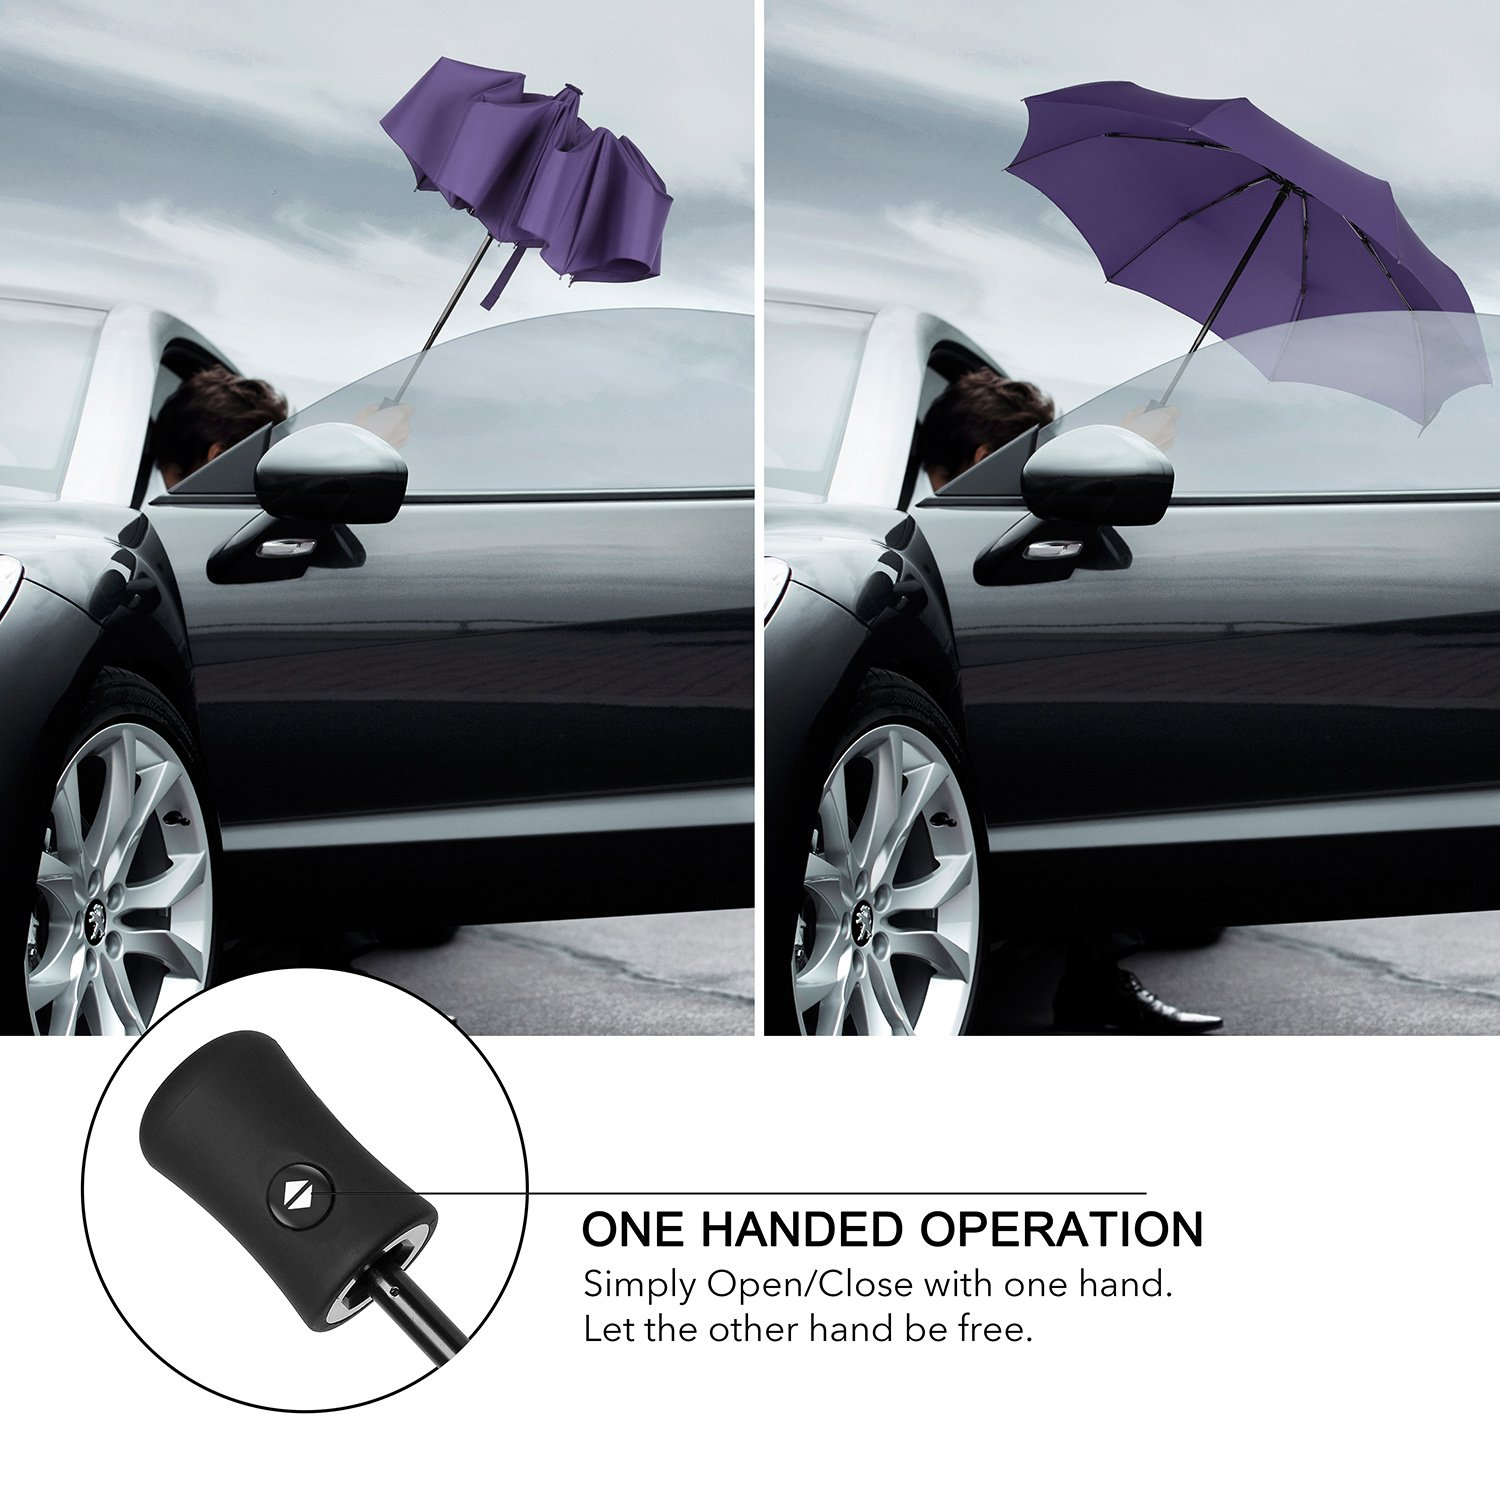 QHUMO Compact Travel Umbrella Windproof, Auto Open Close Umbrellas for Women Men by QHUMO (Image #2)